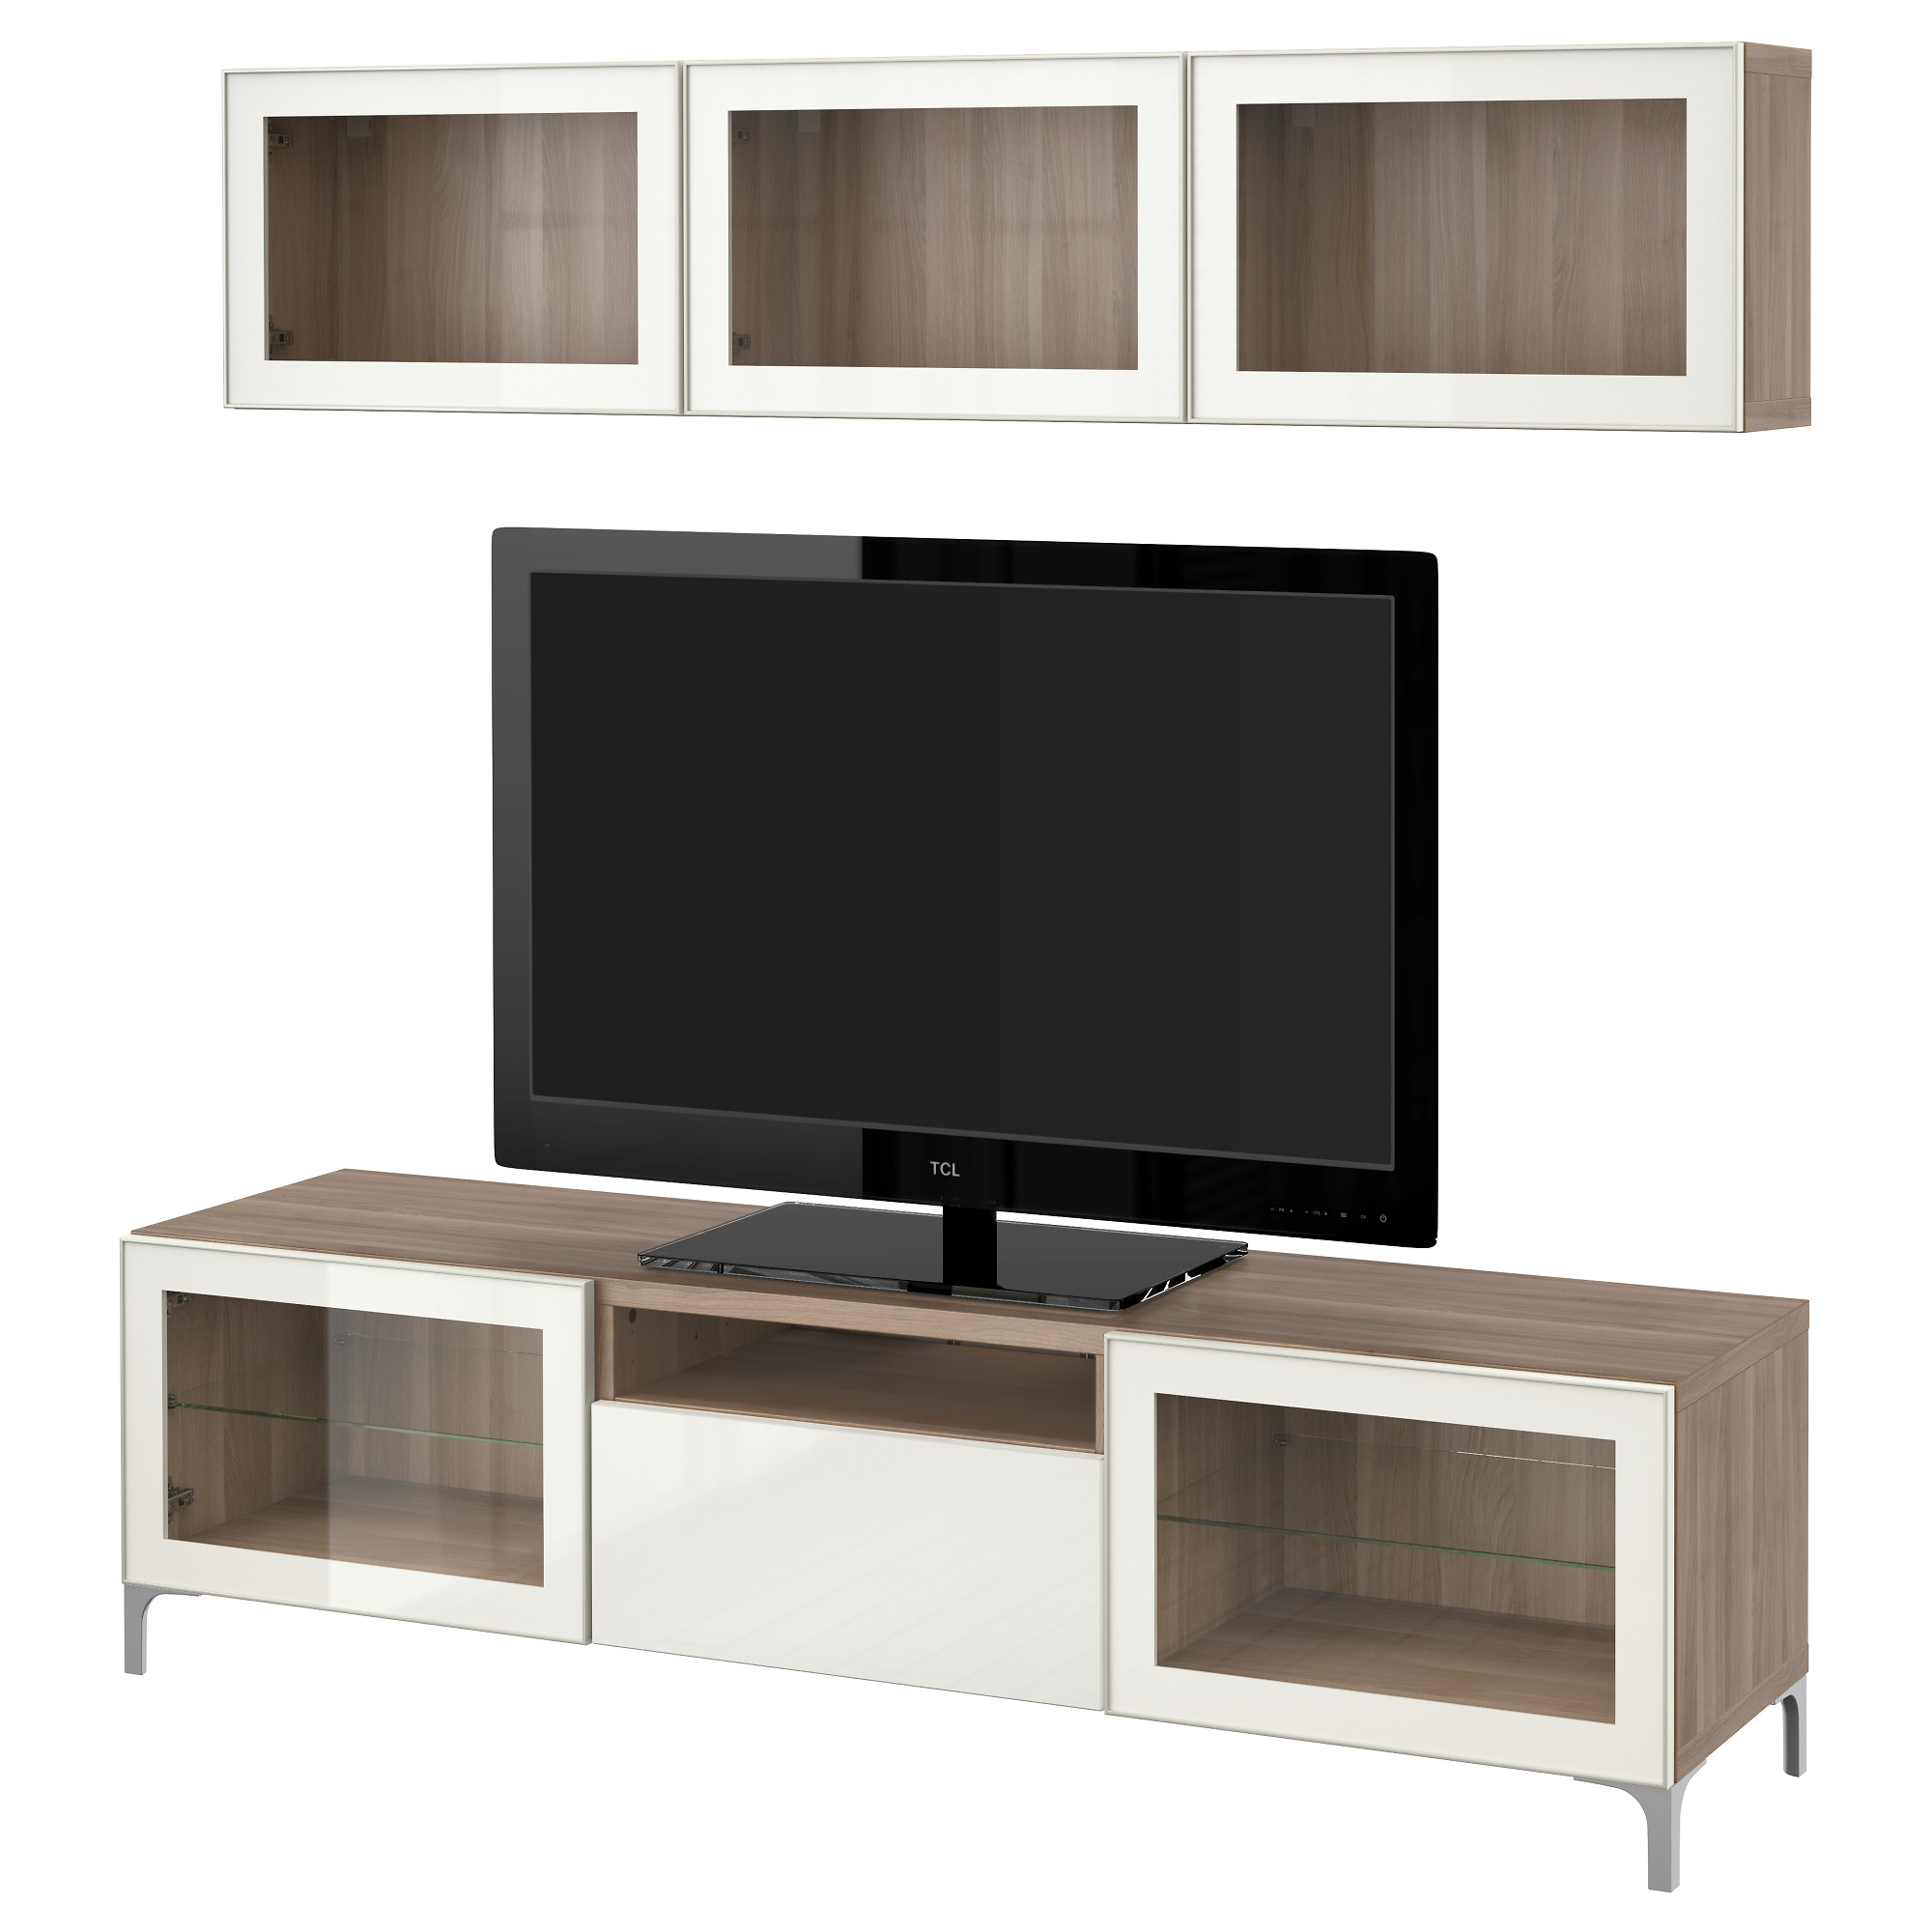 ikea tv cabinets design decoration. Black Bedroom Furniture Sets. Home Design Ideas